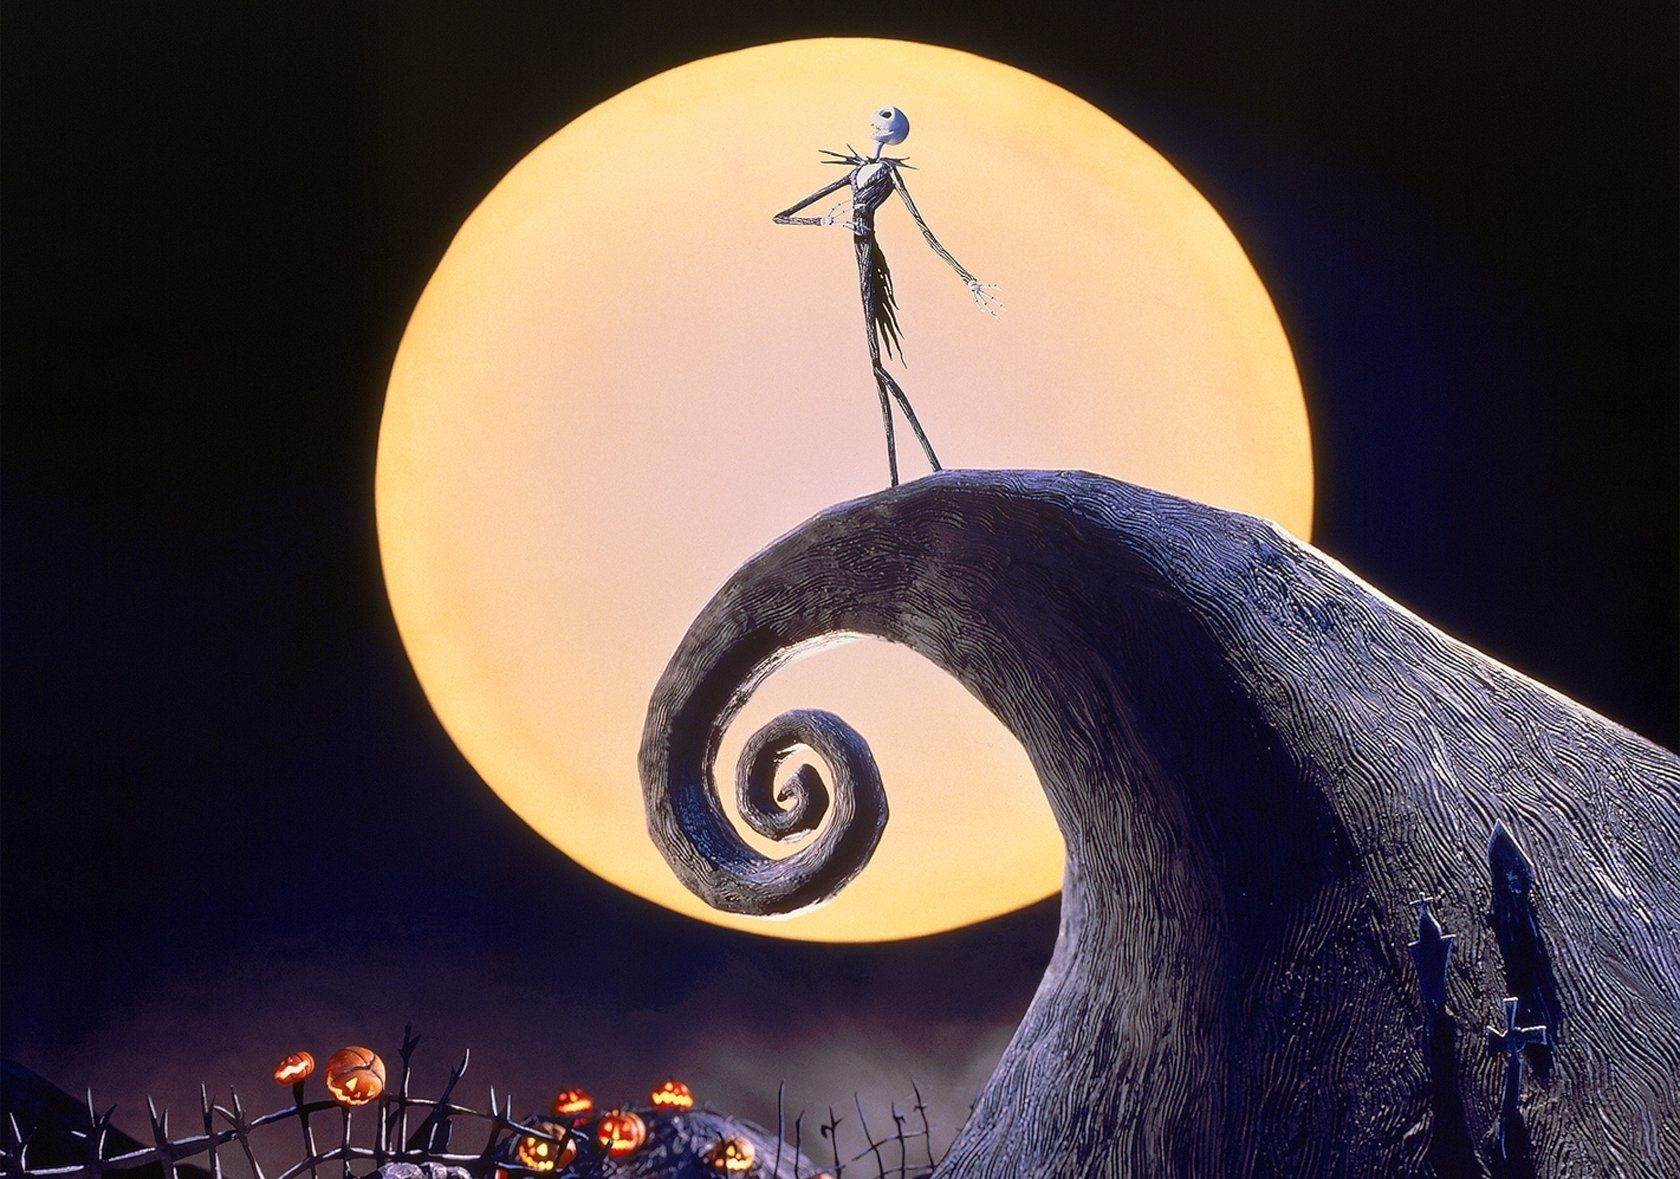 10 Top Nightmare Before Christmas Hd Wallpaper Full Hd 1080p For